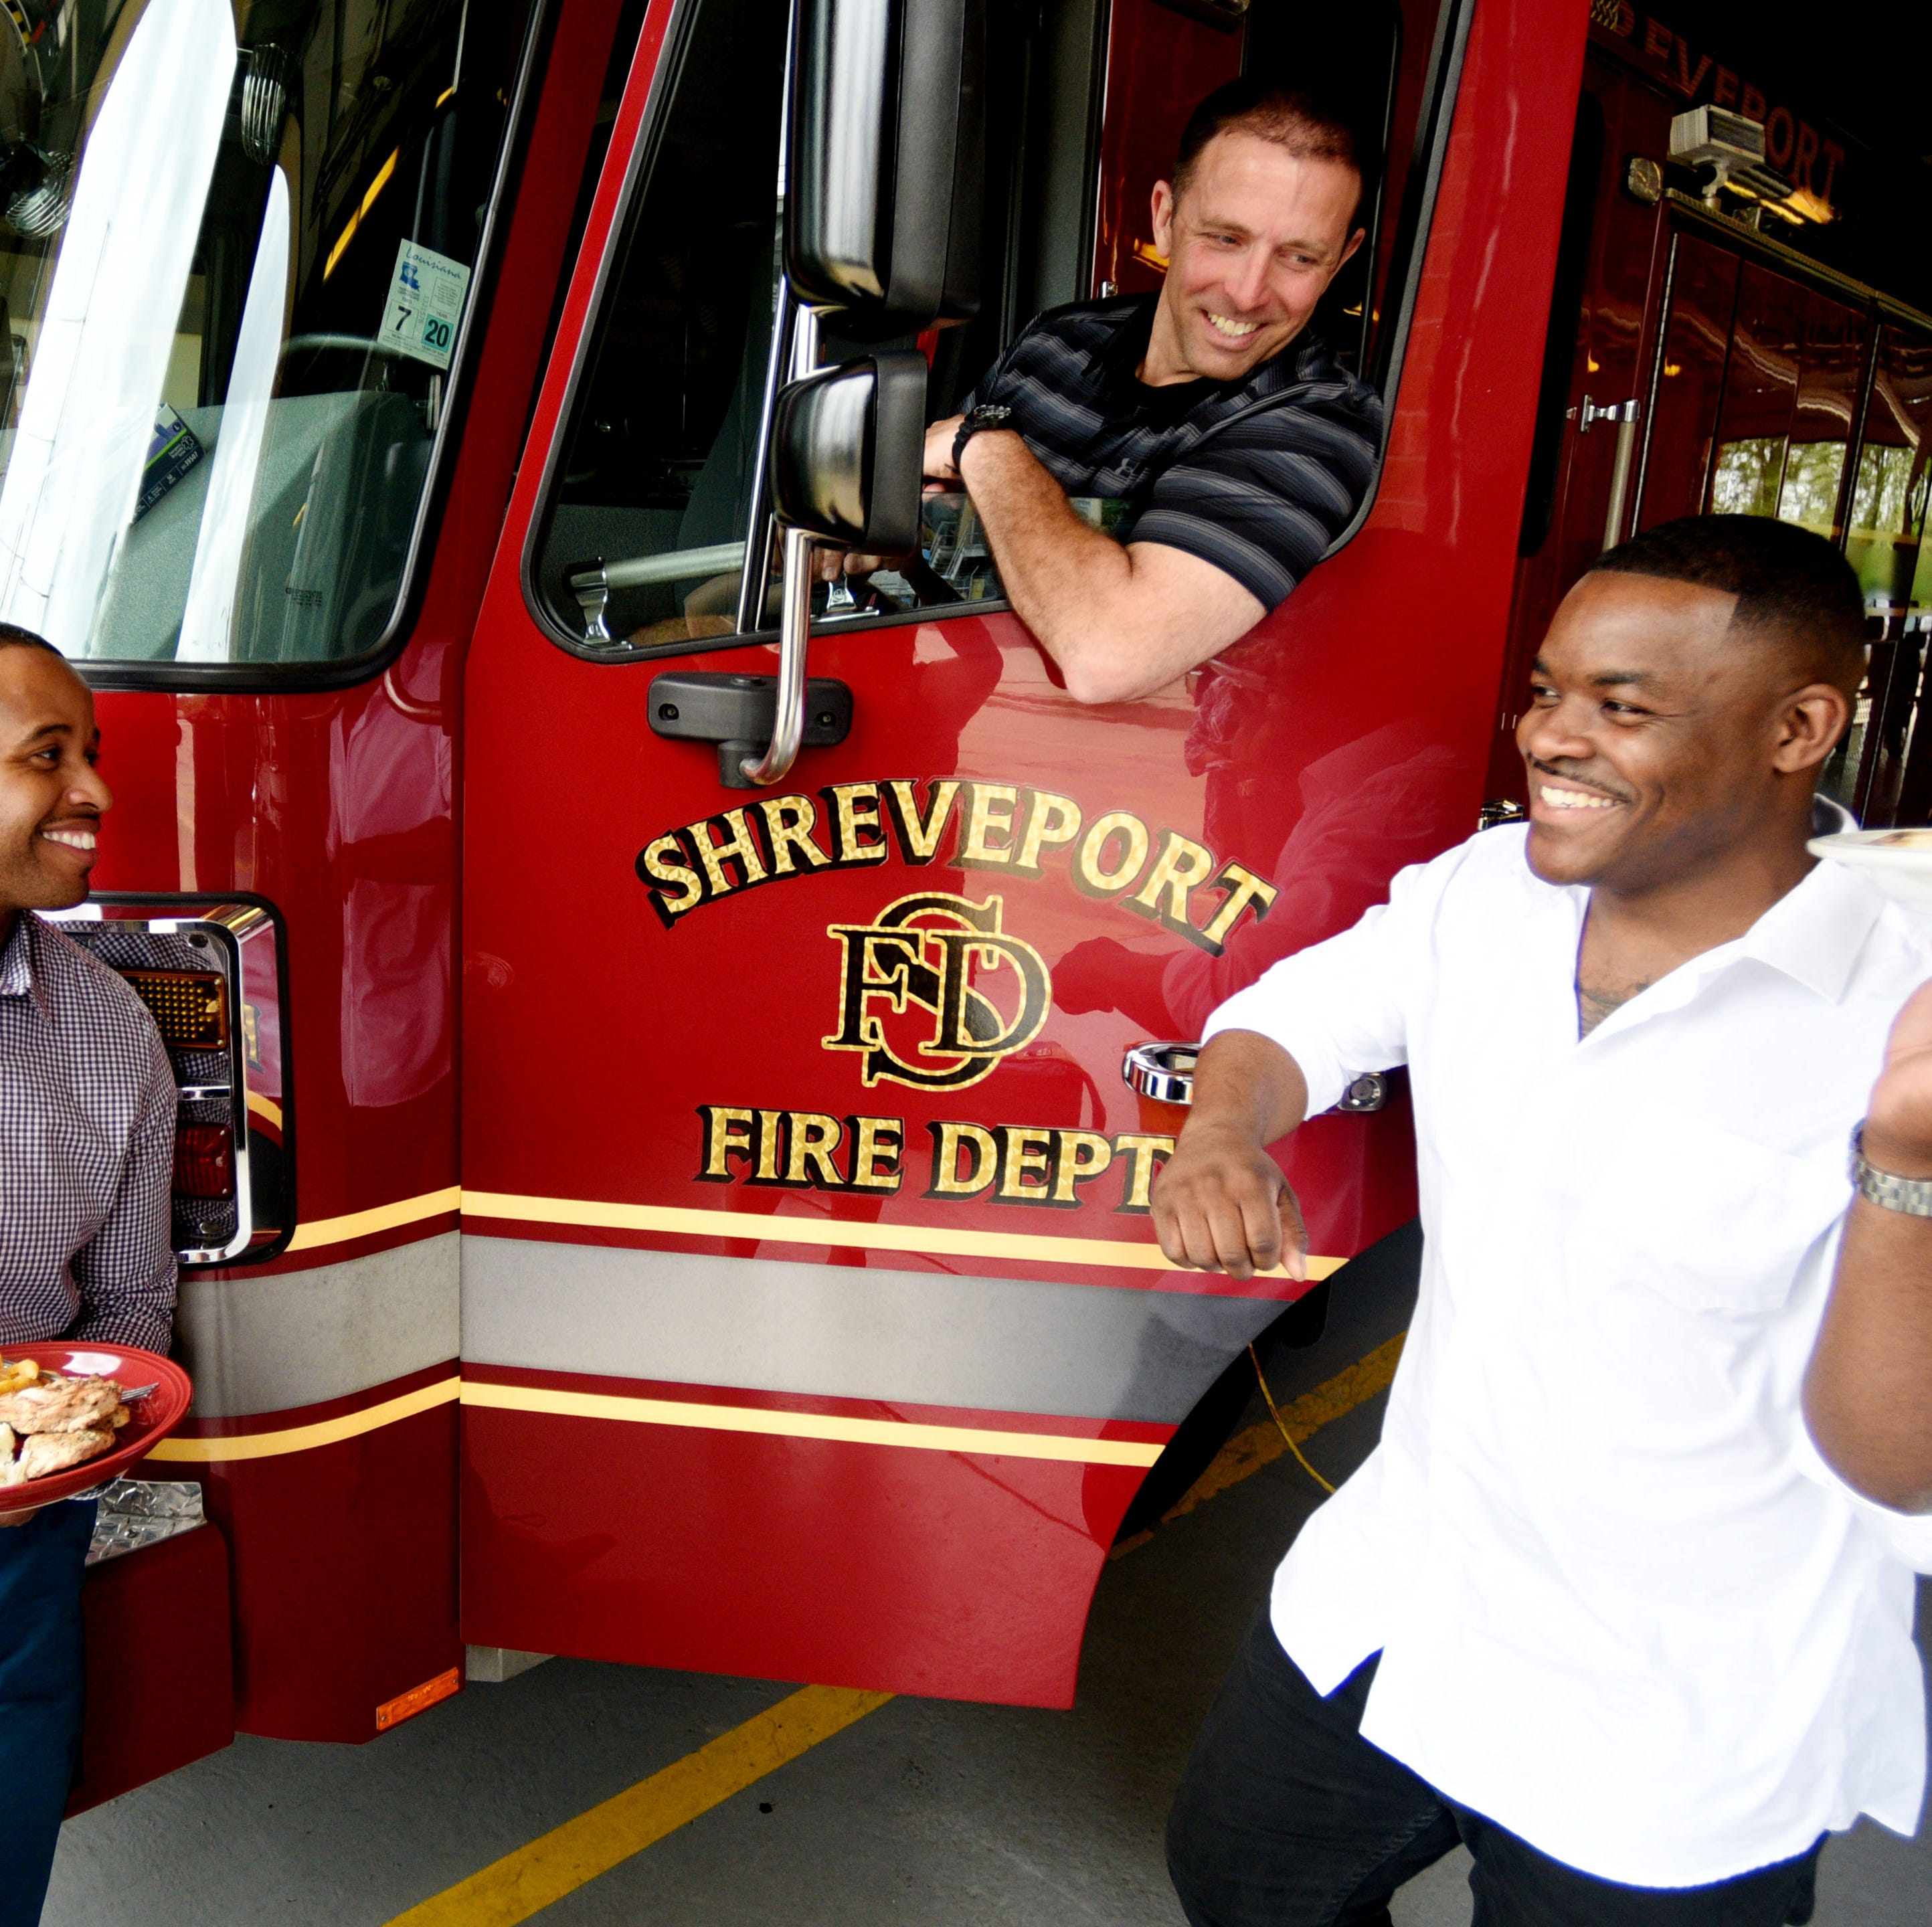 Shreveport Fire Department pitches reality cooking series to network TV